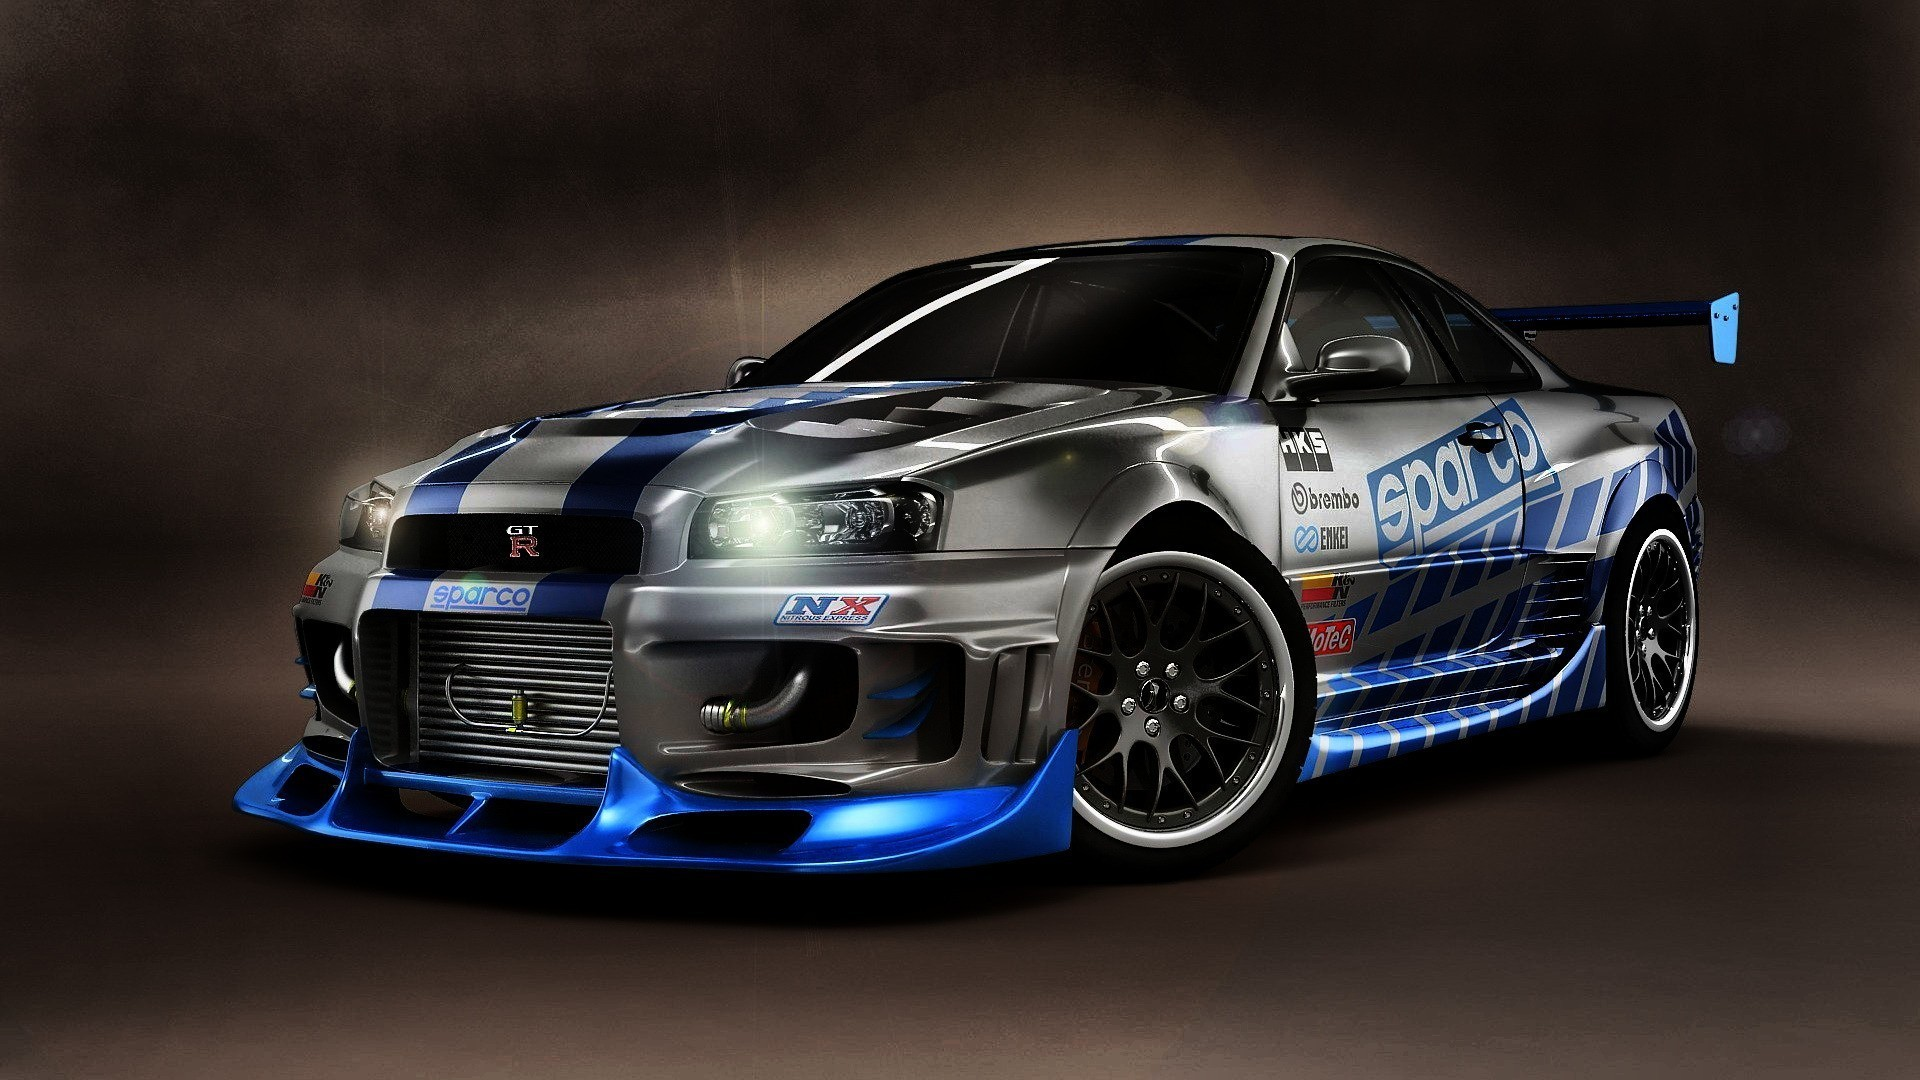 Nissan Skyline GT-R from Fast 2 Furious!